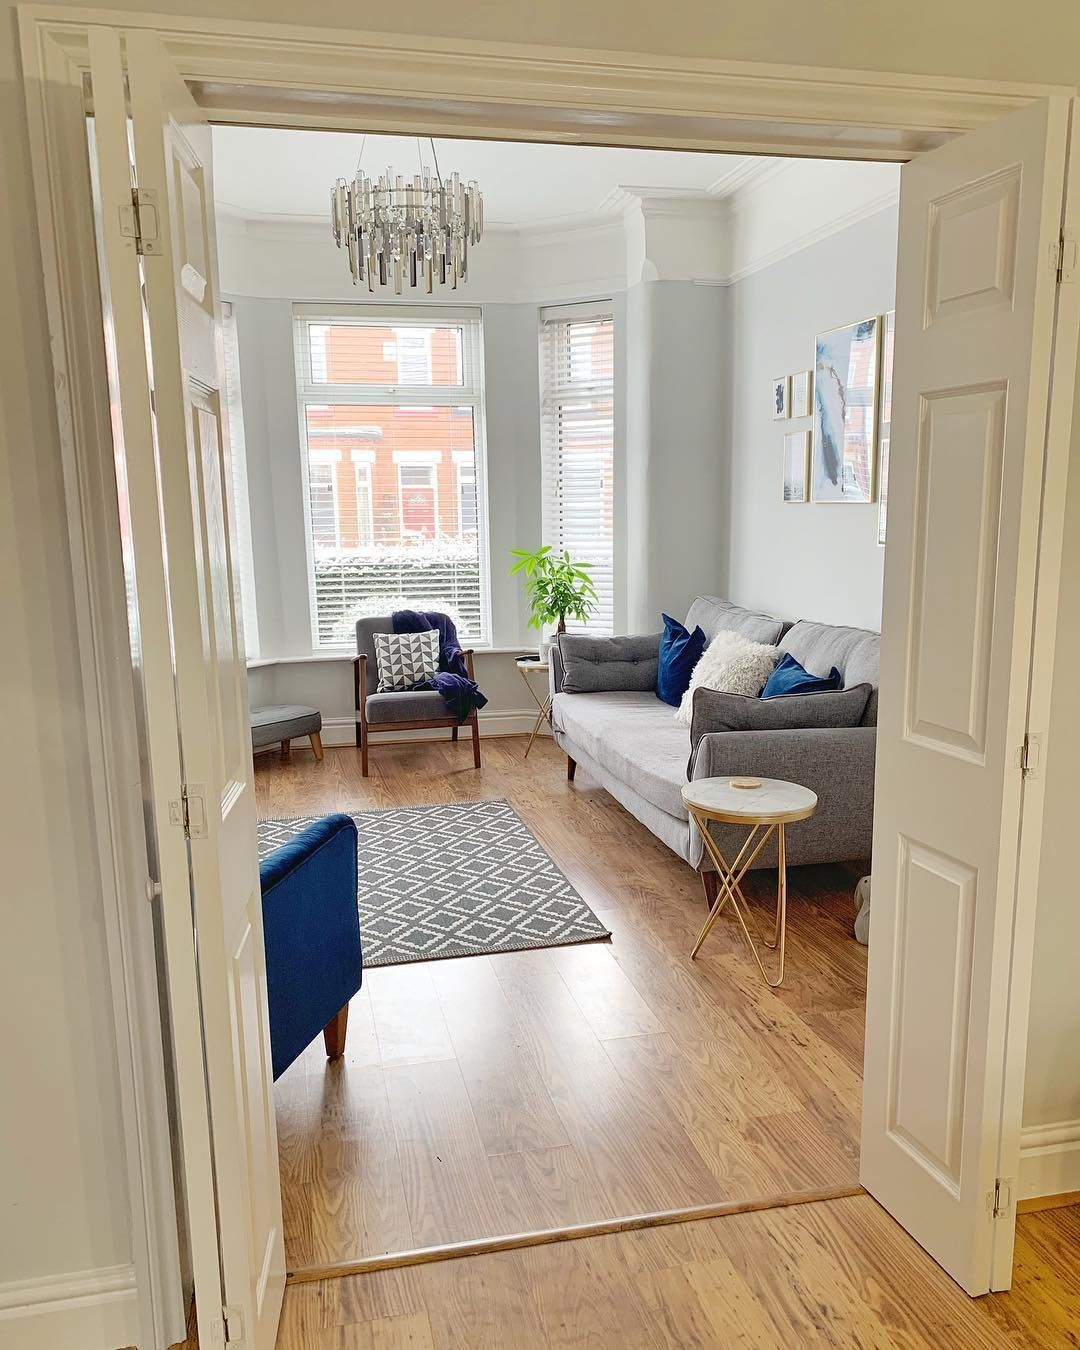 Gemma Louise On Instagram One Of The Selling Points For Us Buying The House Was That The Victorian Living Room Living Room Divider Living Room Knock Through